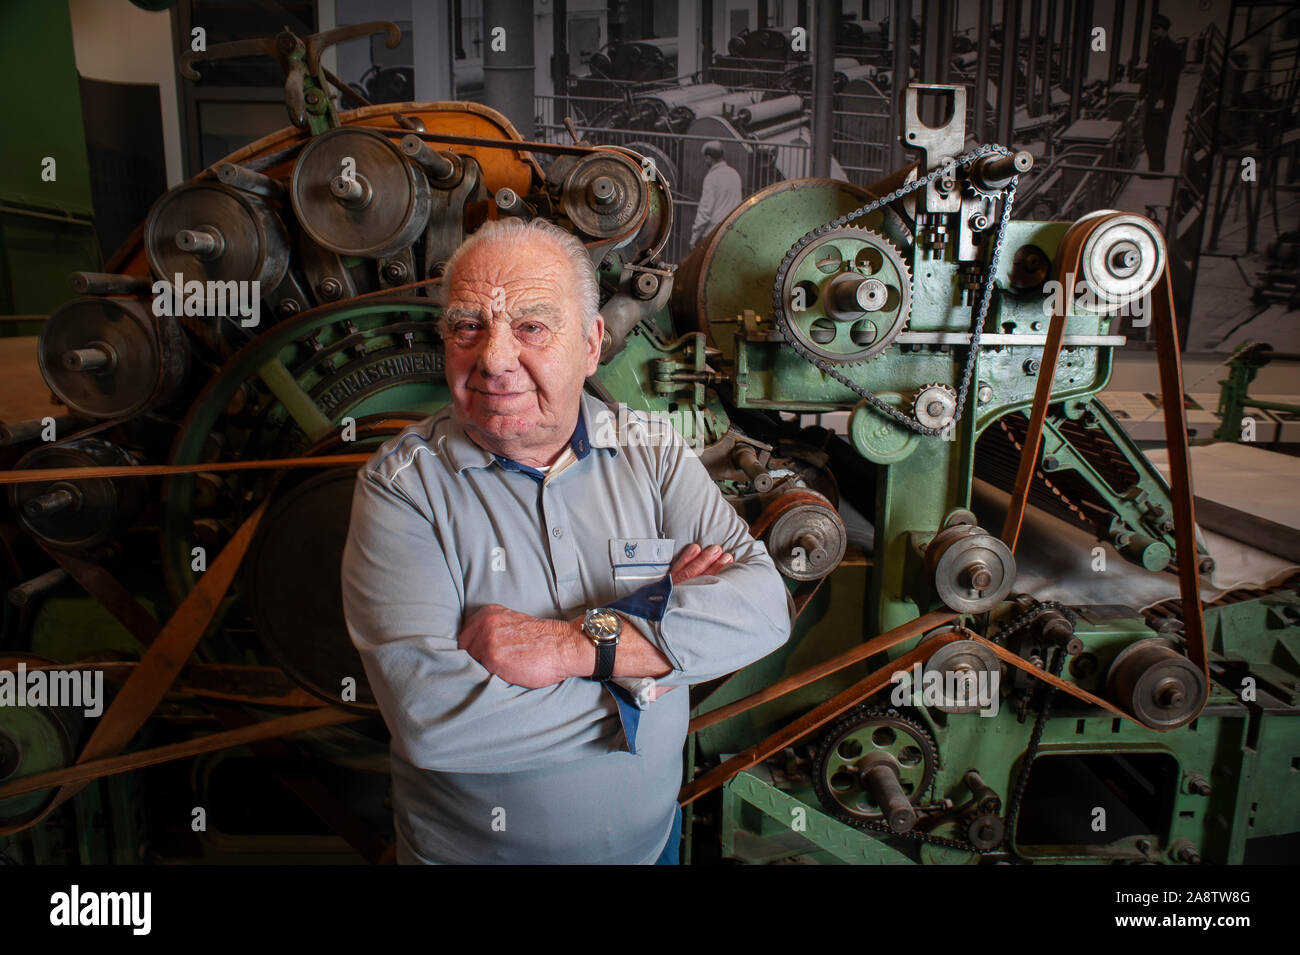 83 year Roland Schulze who worked on the production of the East German Trabant in the time of the DDR stands beside some of the machinery used. Stock Photo